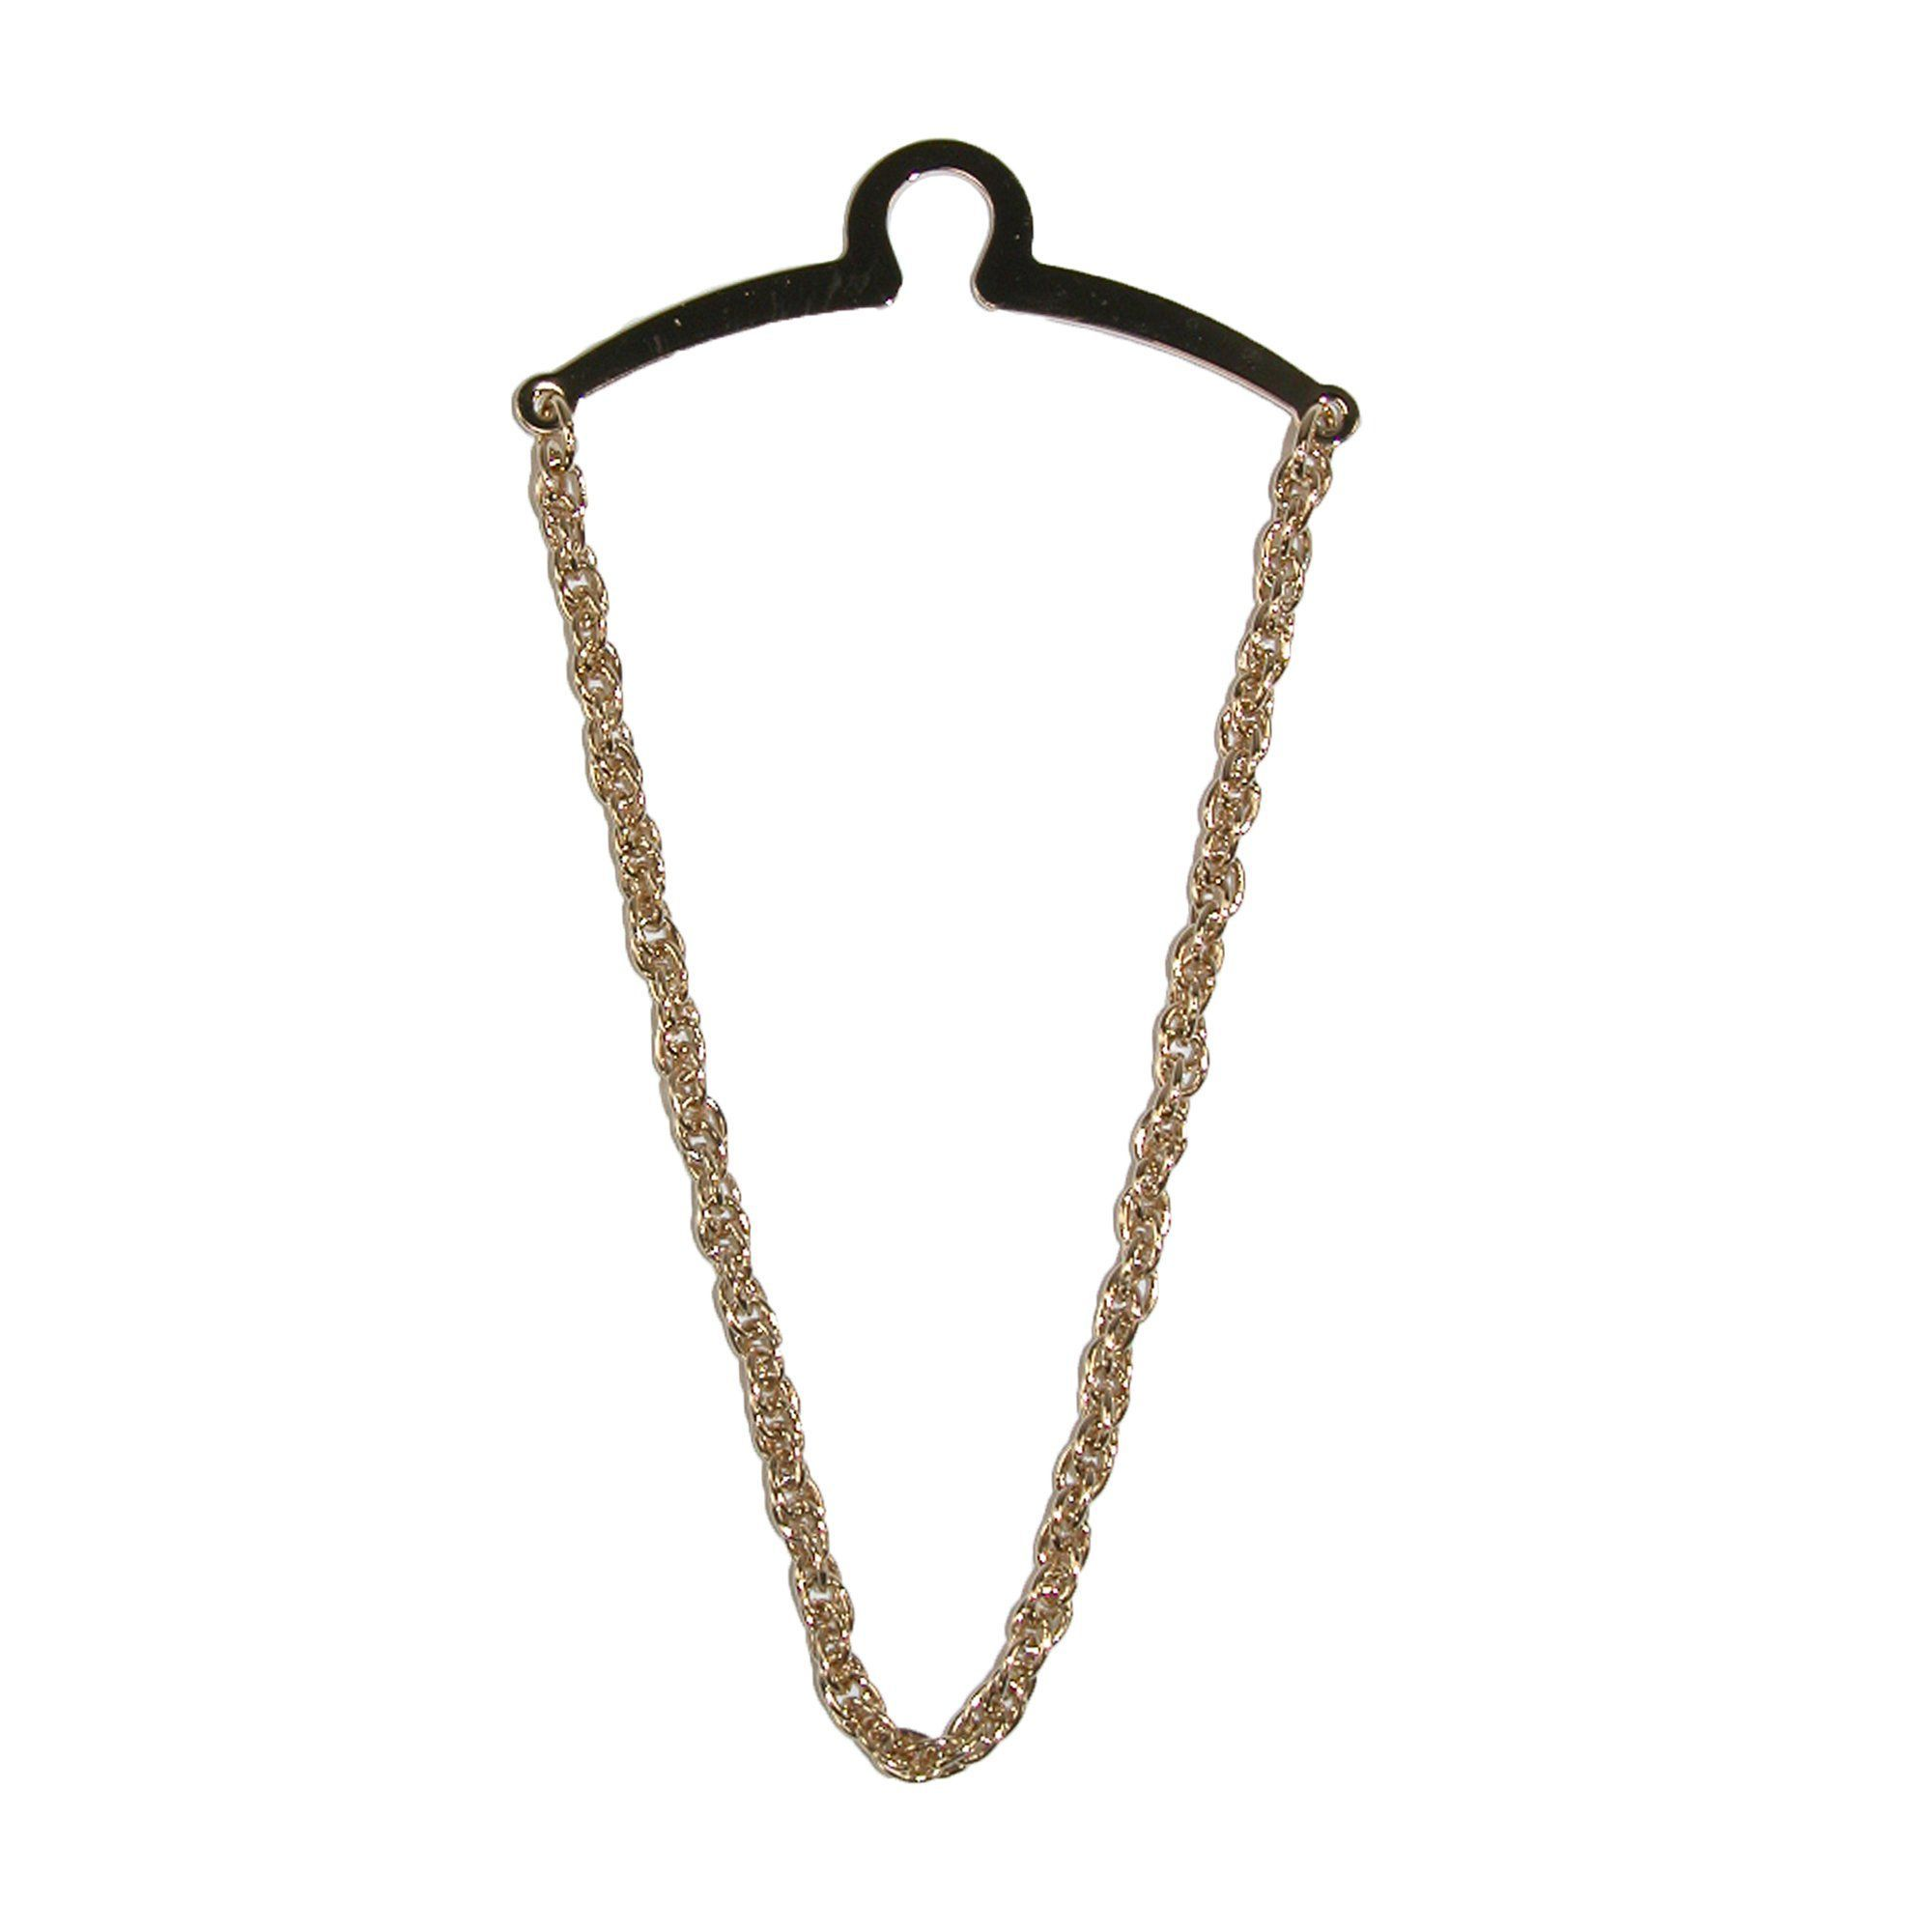 Mens Rope Style Tie Chain Gold Competition Inc